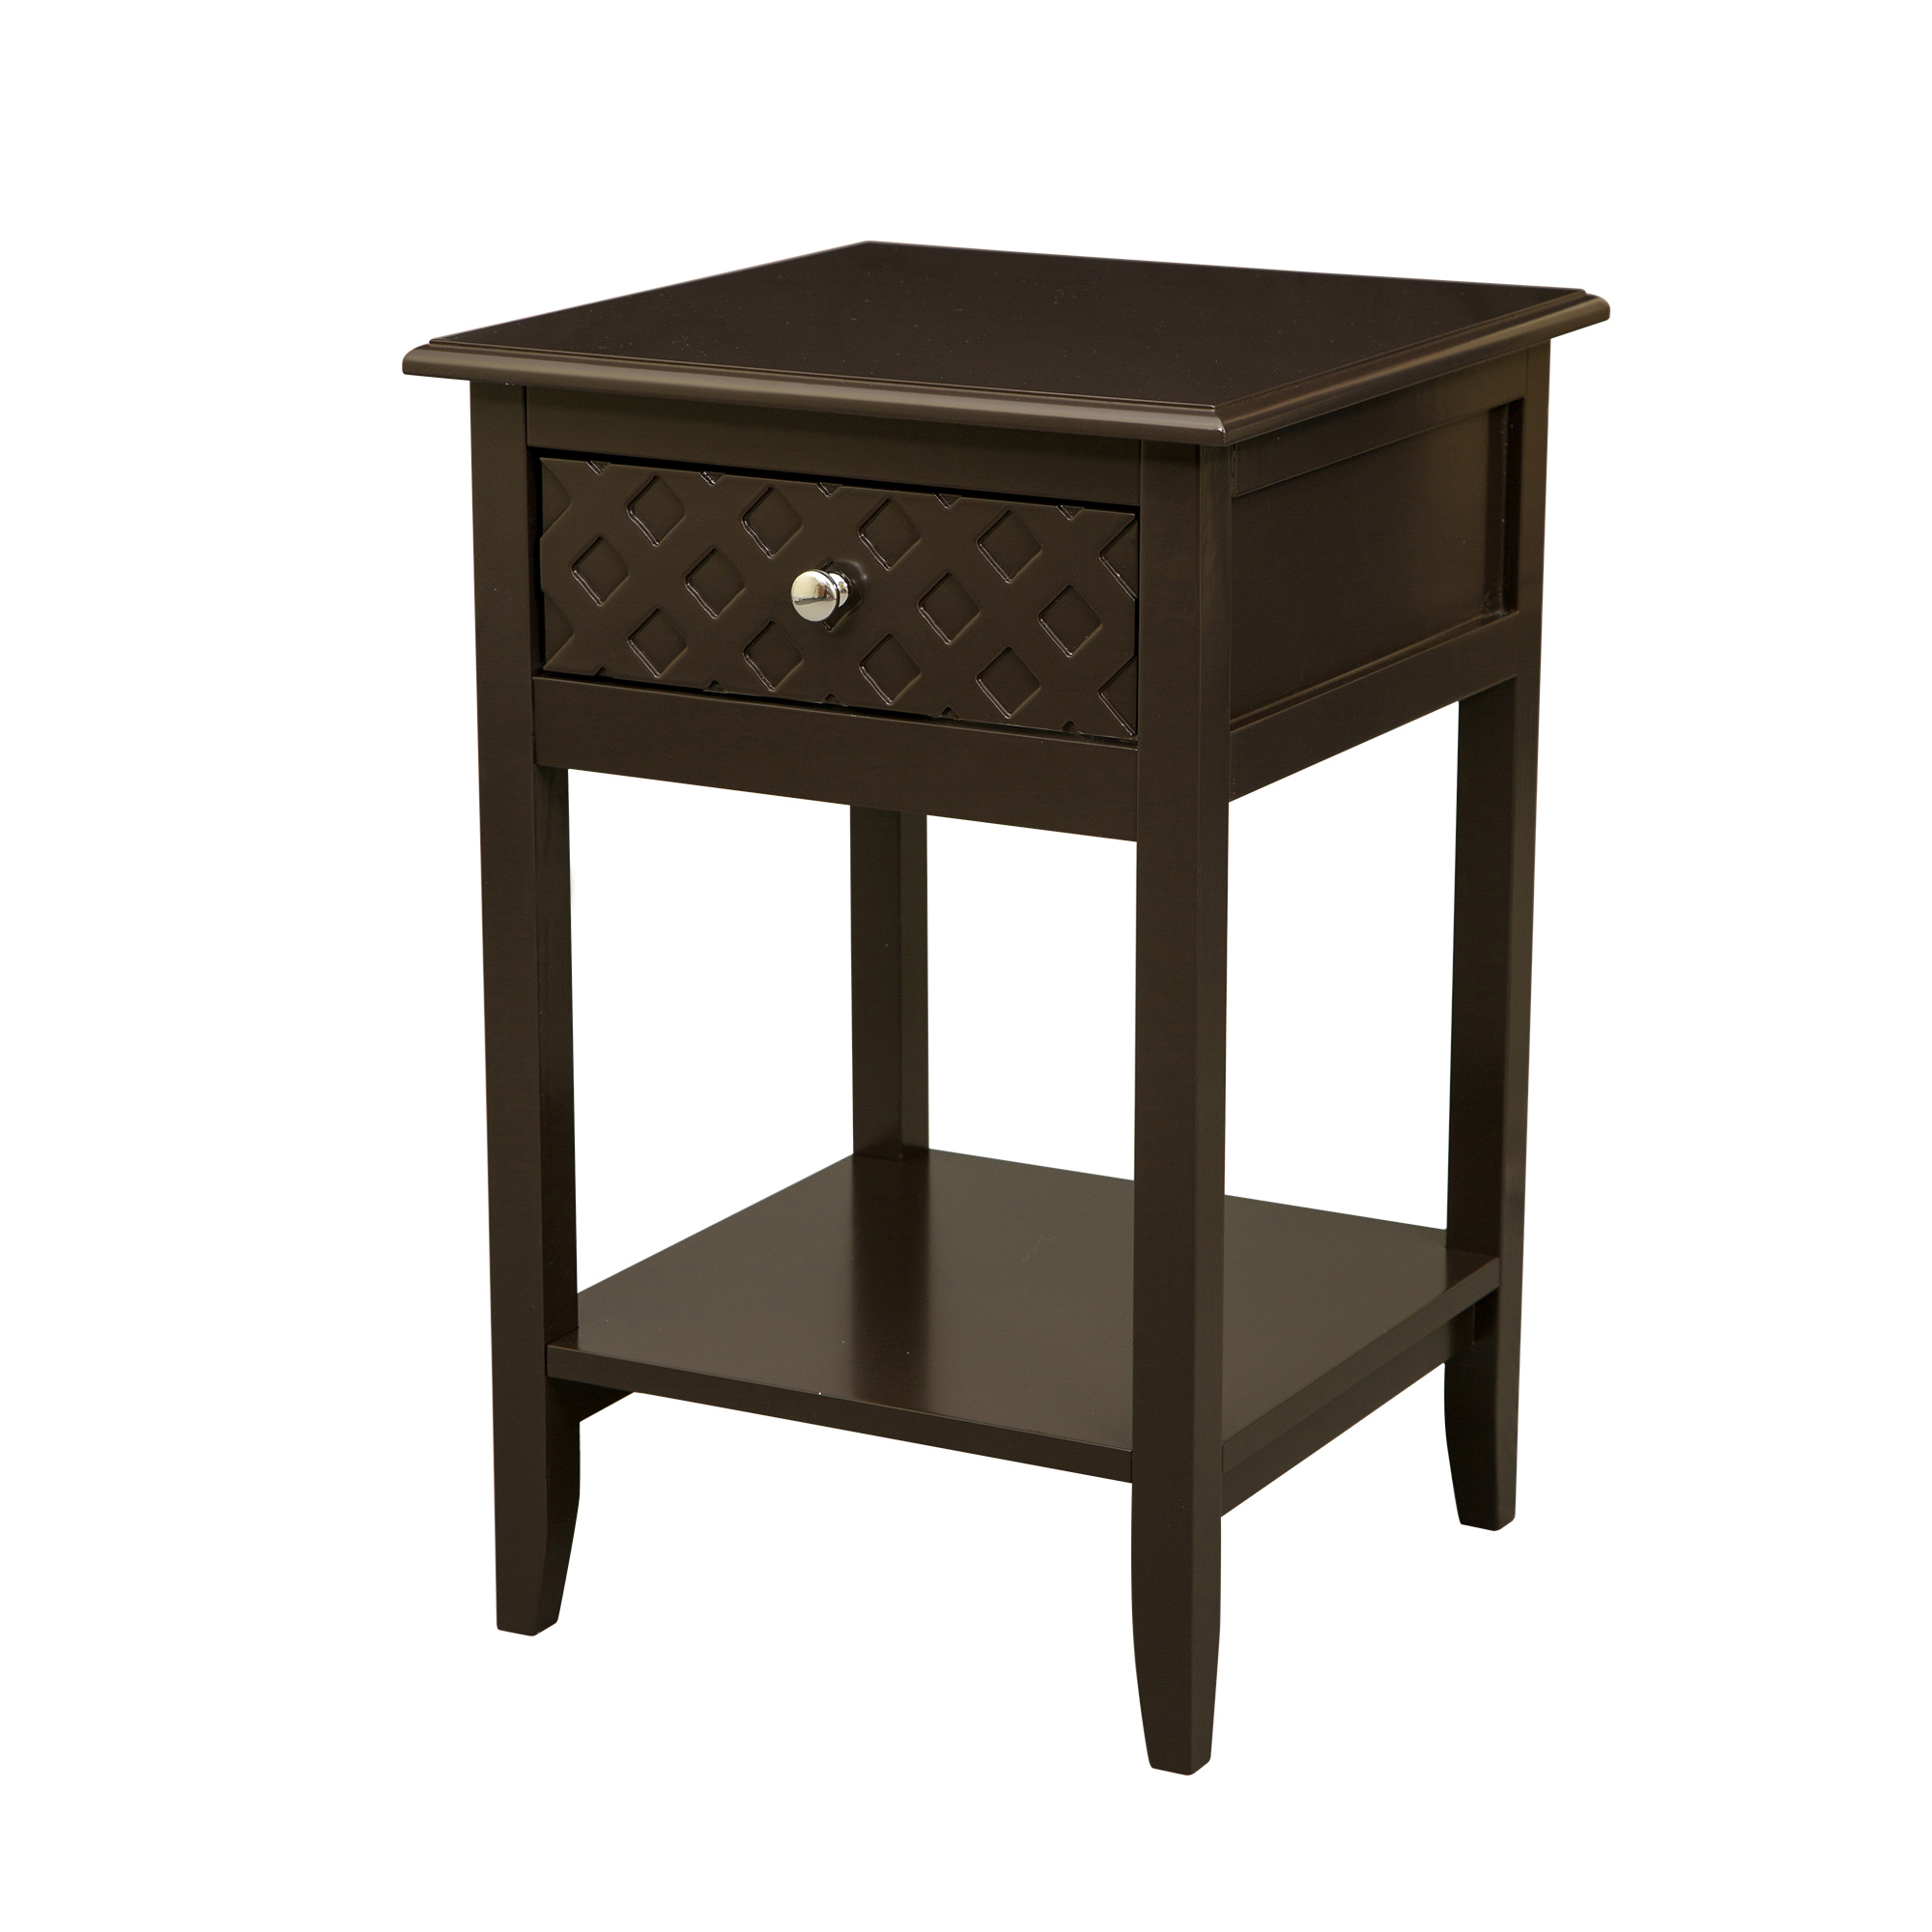 Glitzhome Square Frame Espresso Wooden End Table With